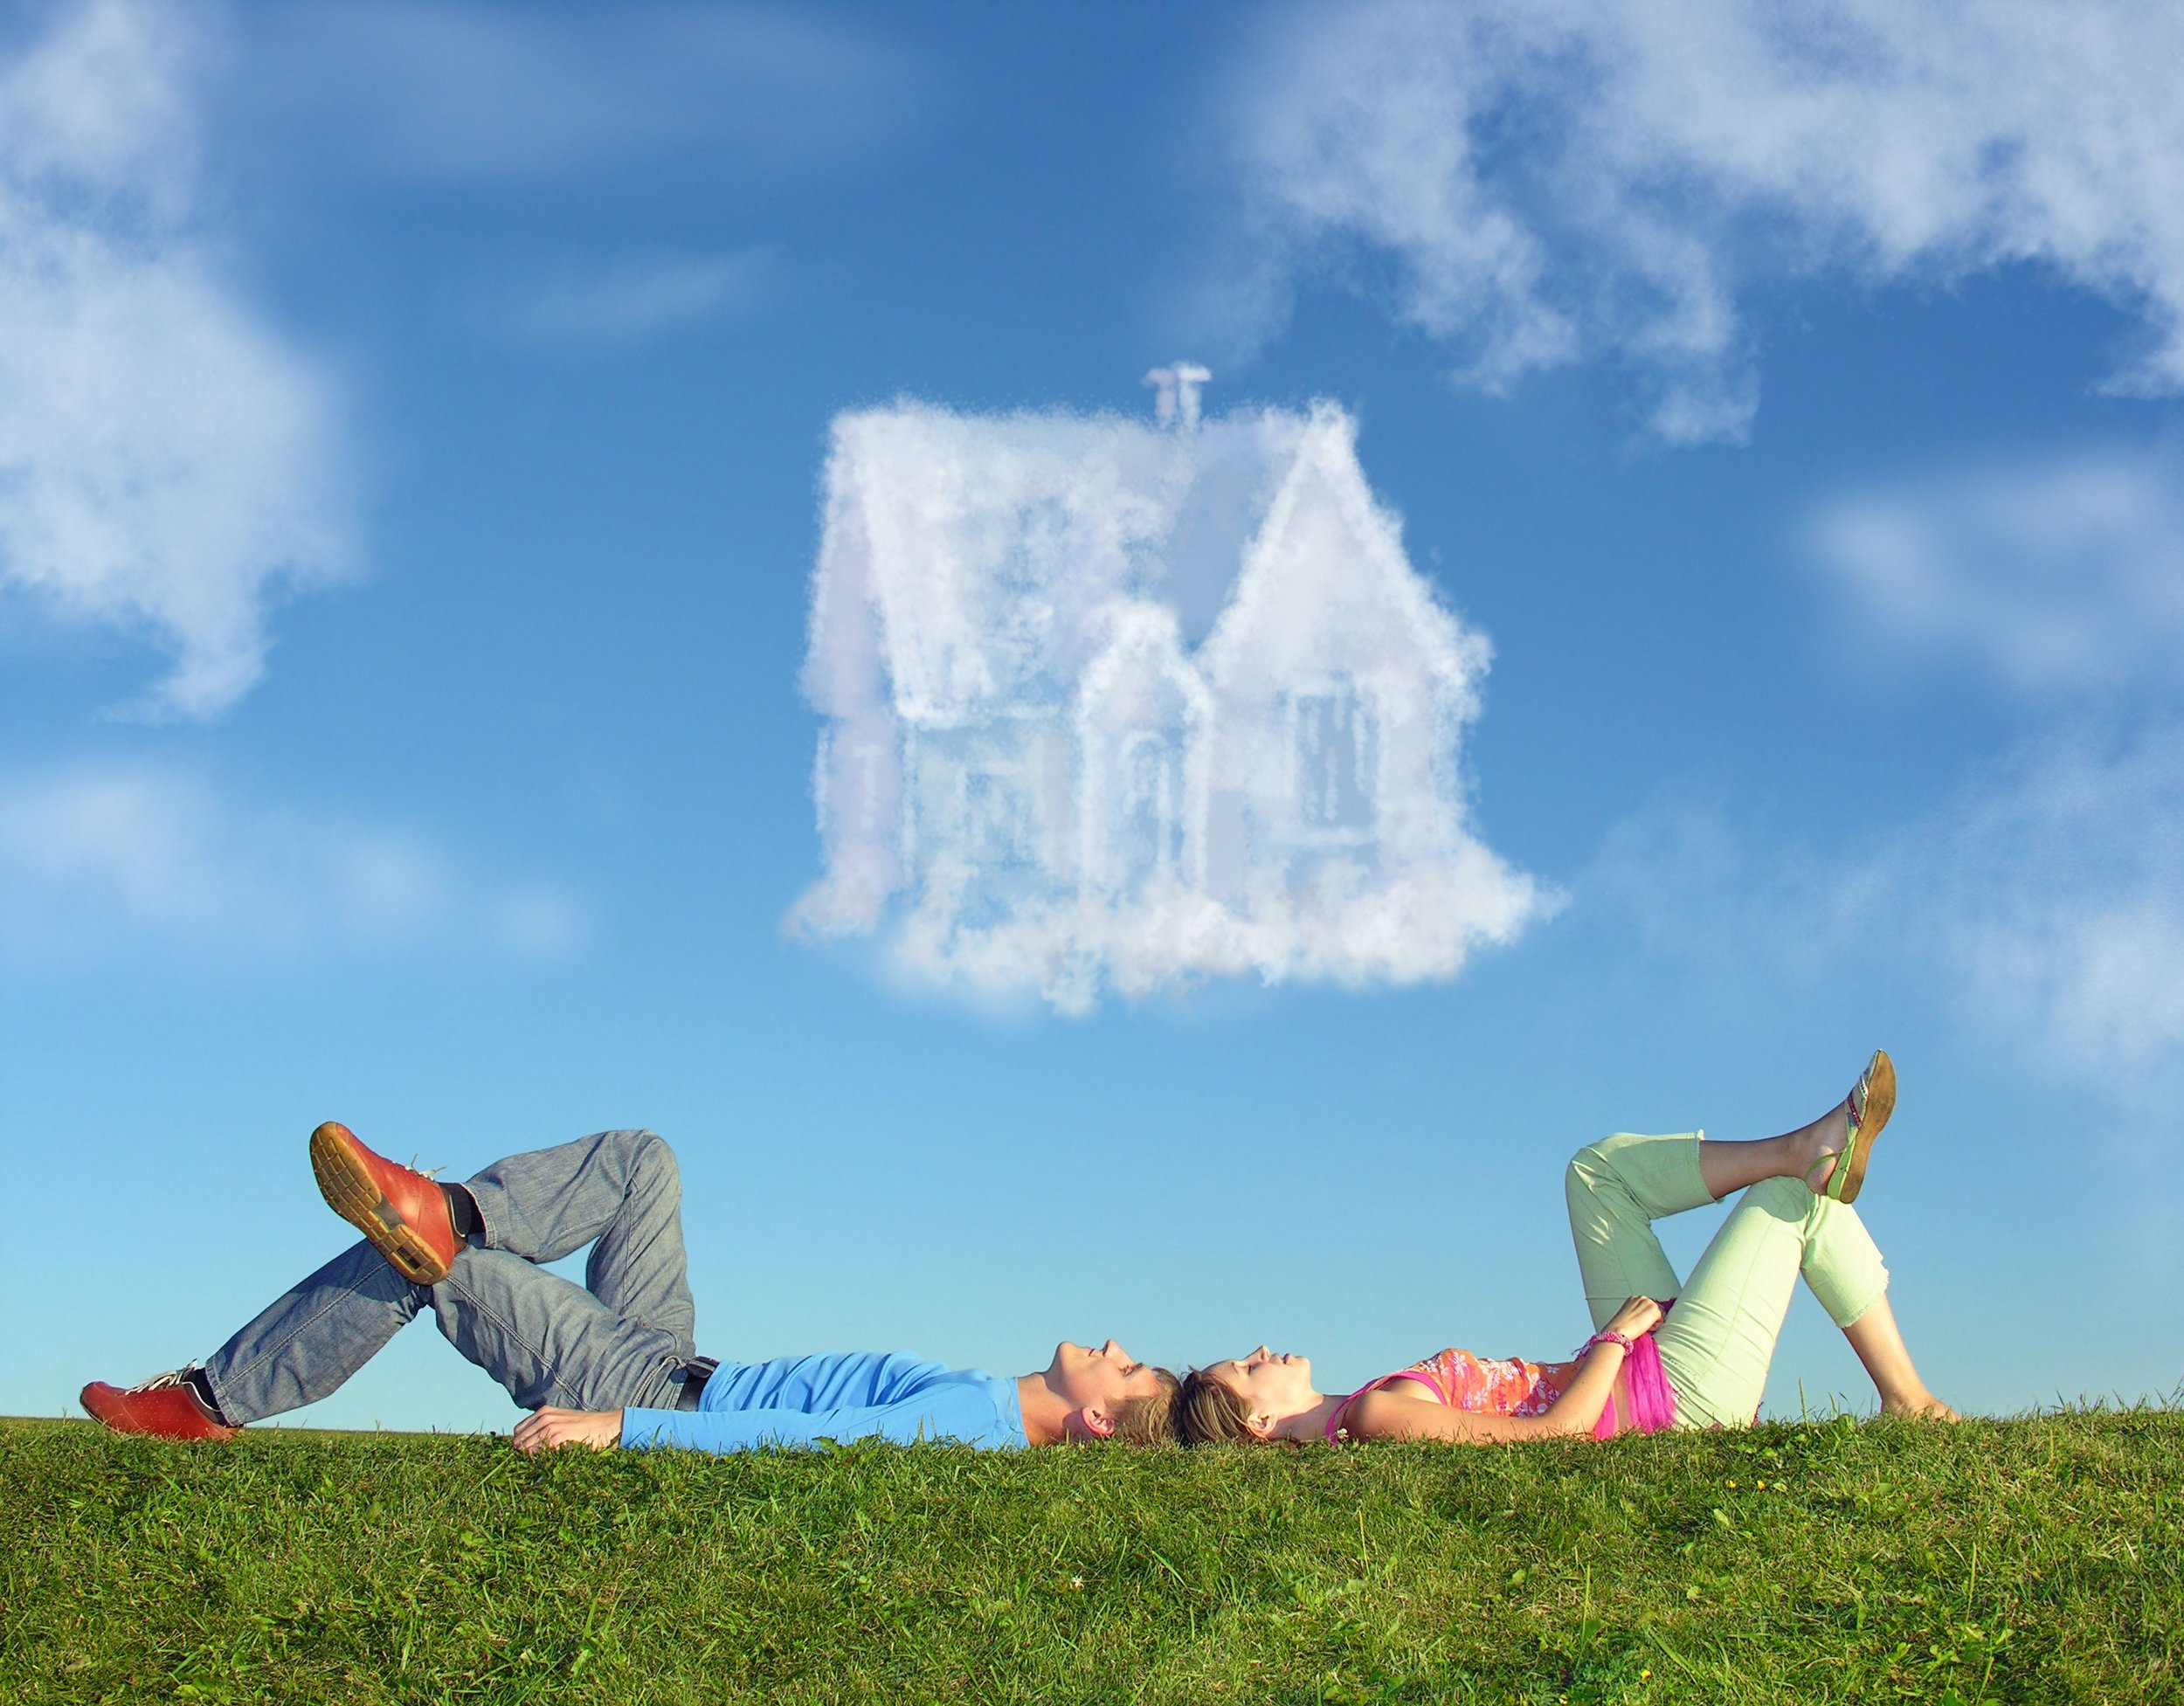 Finding a Home - I can help you make the dreamof buying a new house into a reality.